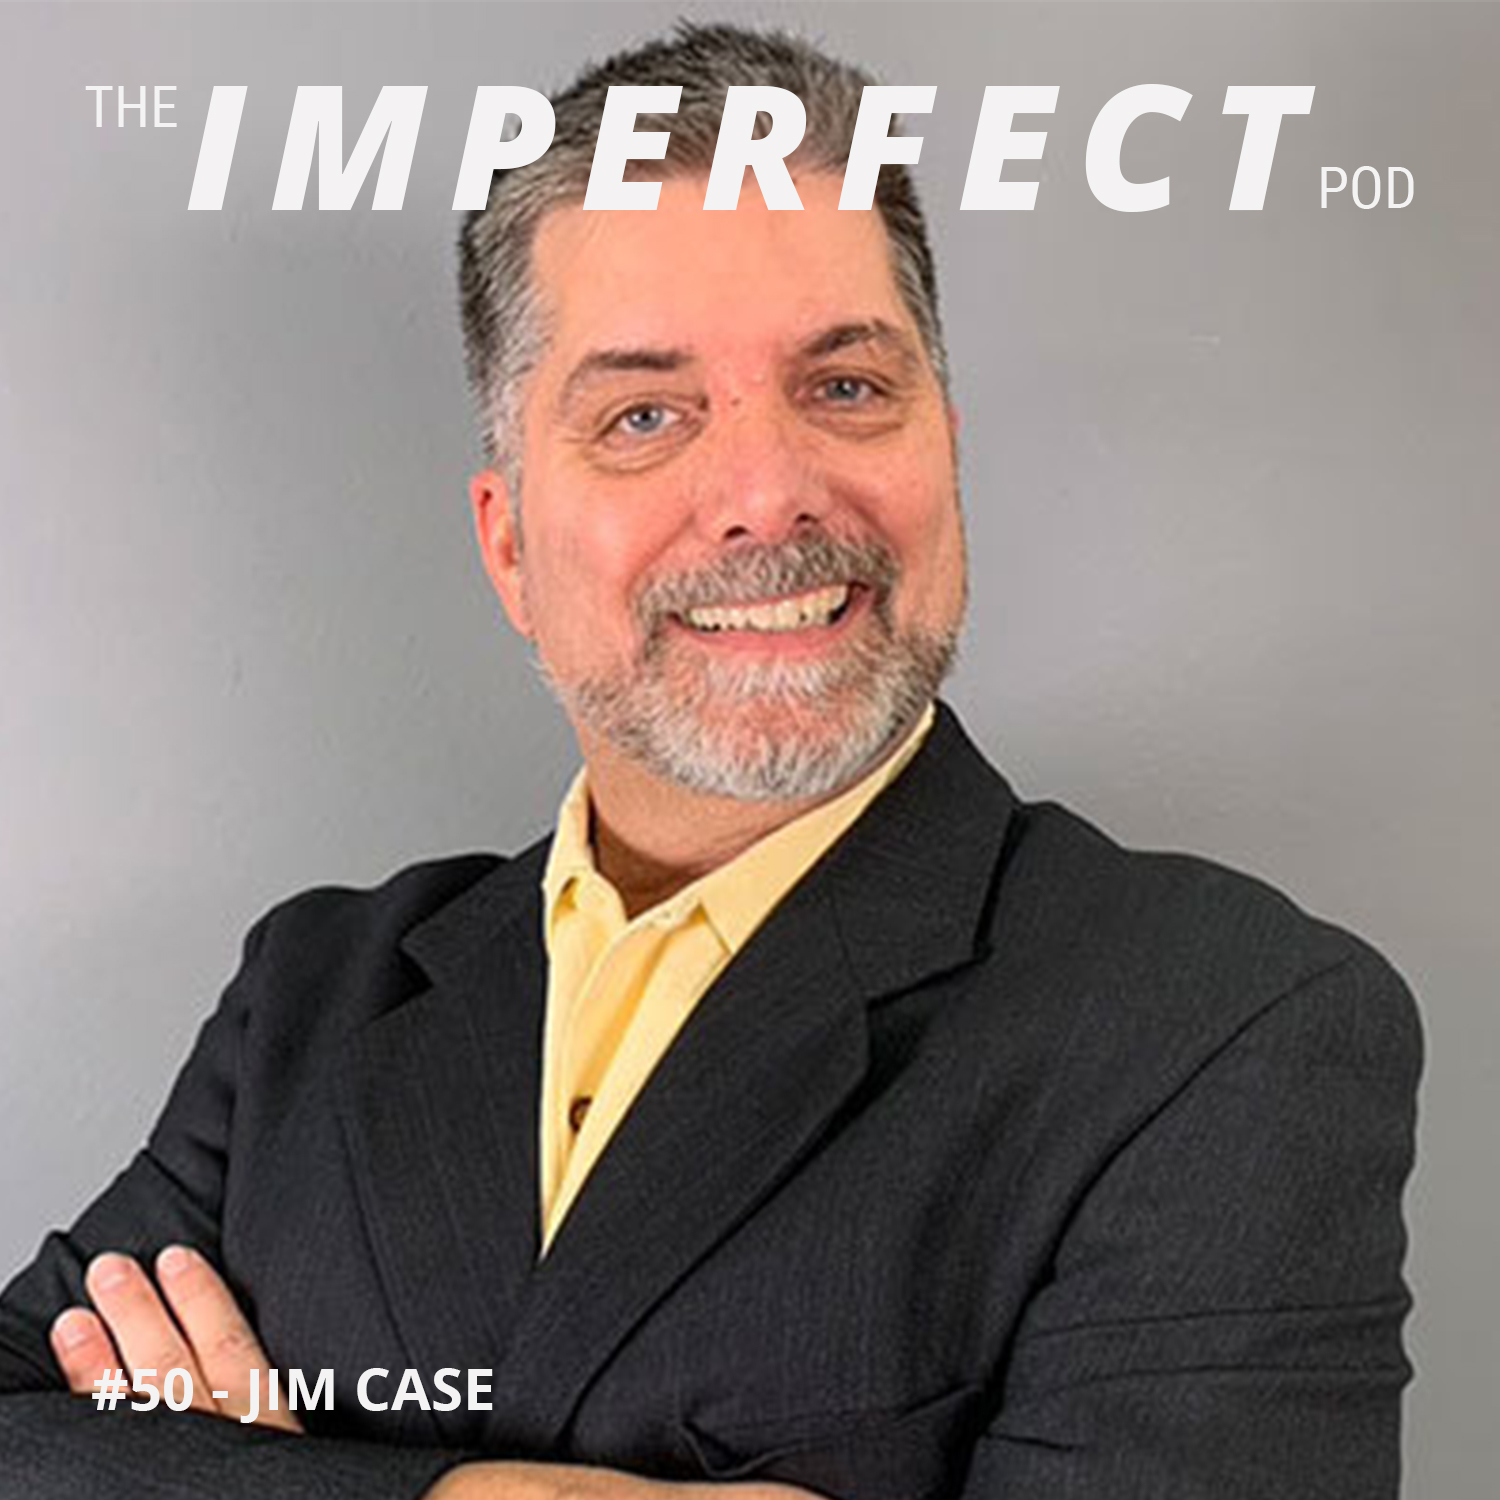 #50 | A Gay Man In a Straight Marriage: An Interesting Story About Jim's Journey as a Man | Jim Case